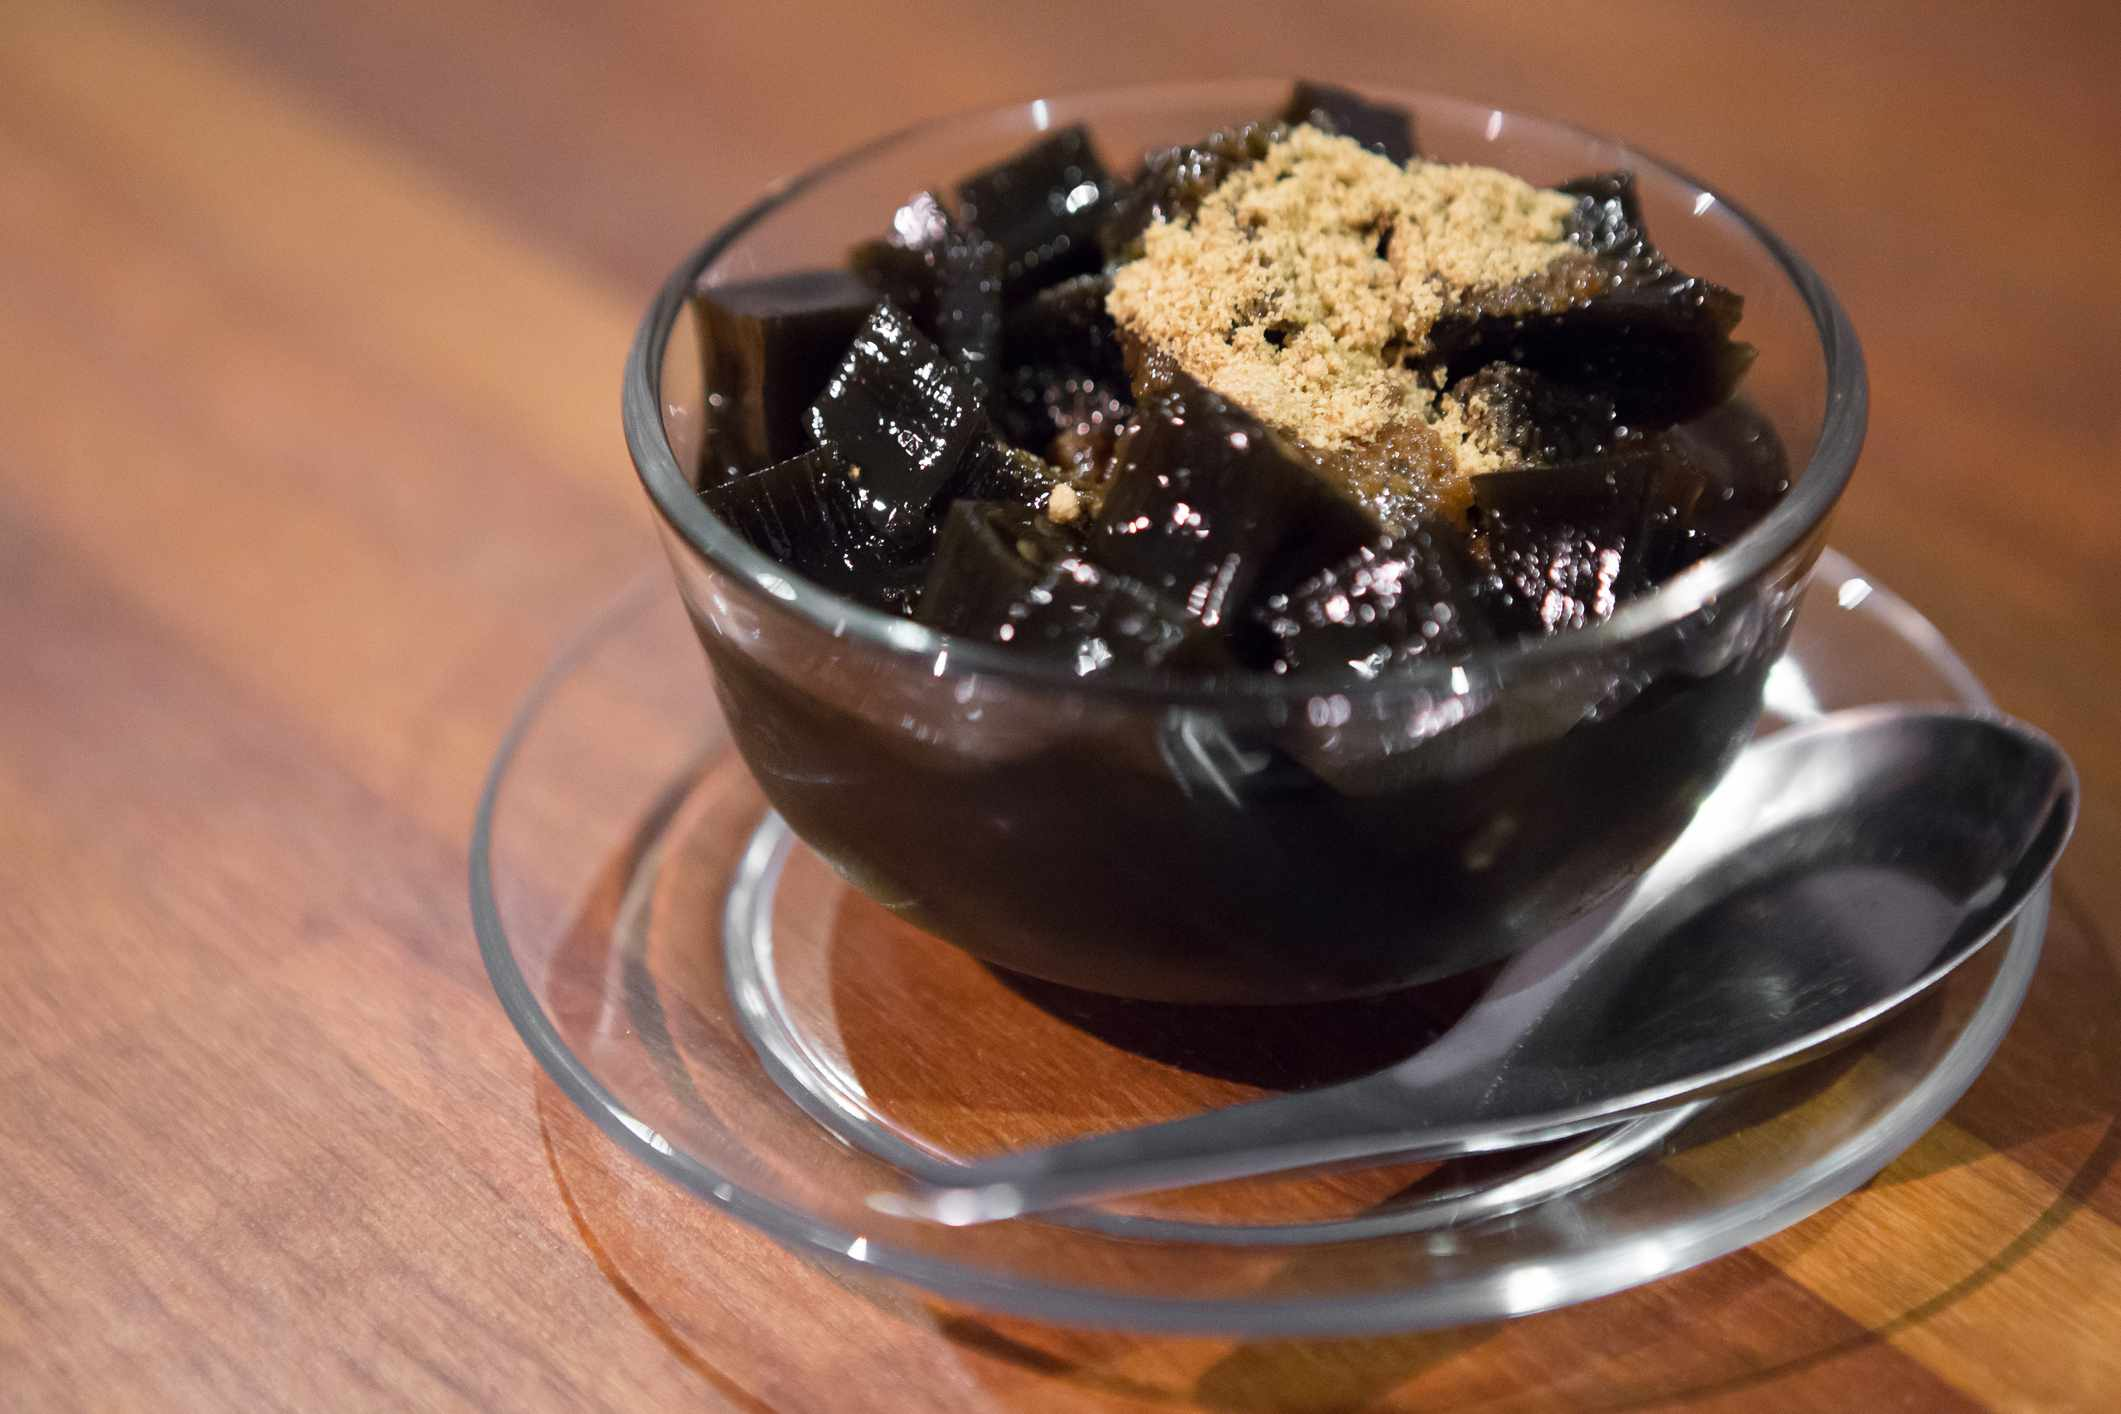 Close up of black jelly cubes with a tan powder in a clear cup on a wooden table